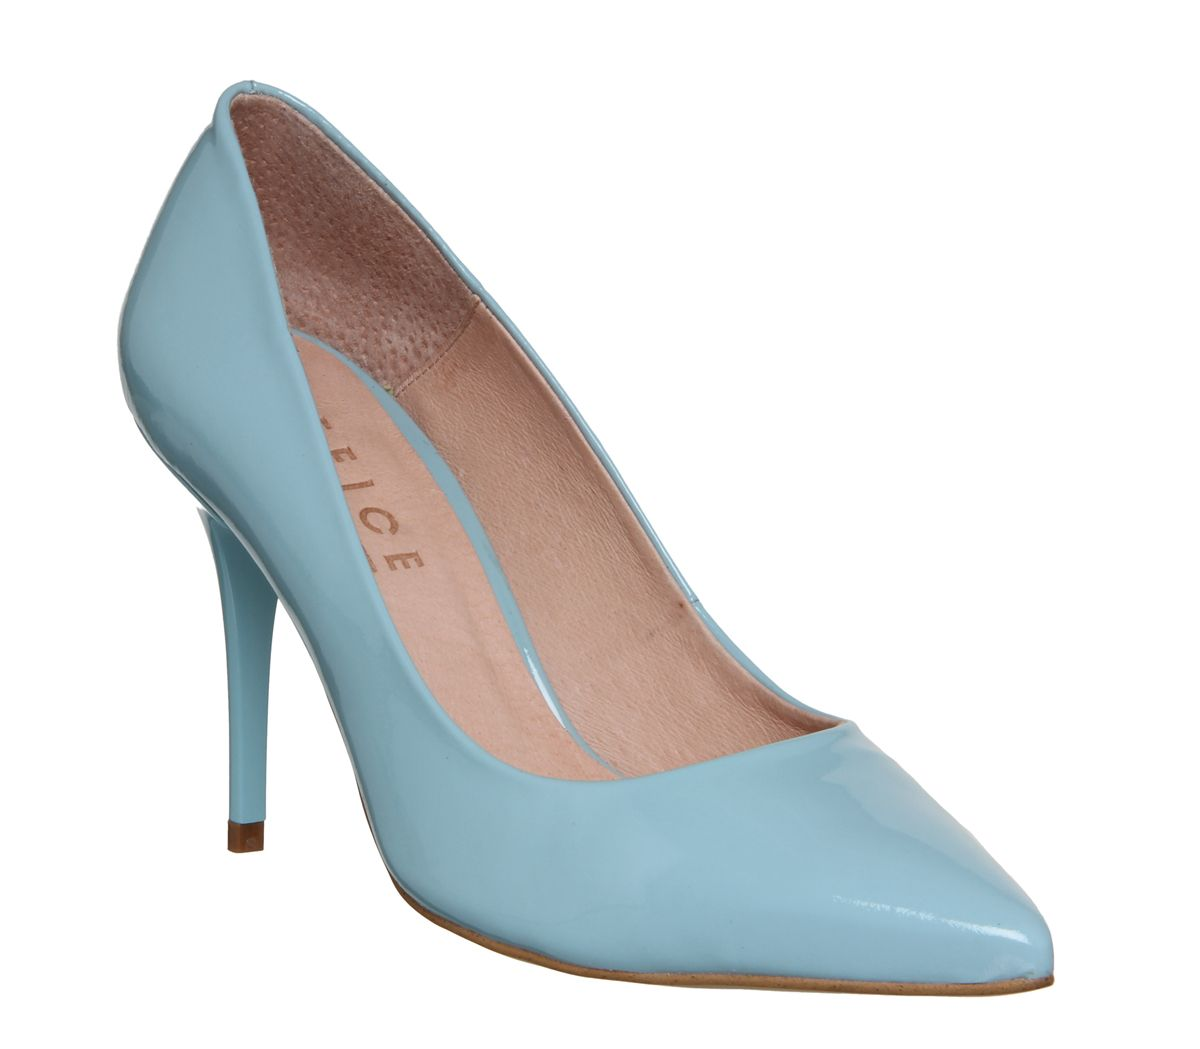 e7669f8230 Office Graduate Point Court Heels Pastel Blue Patent Leather - Mid Heels